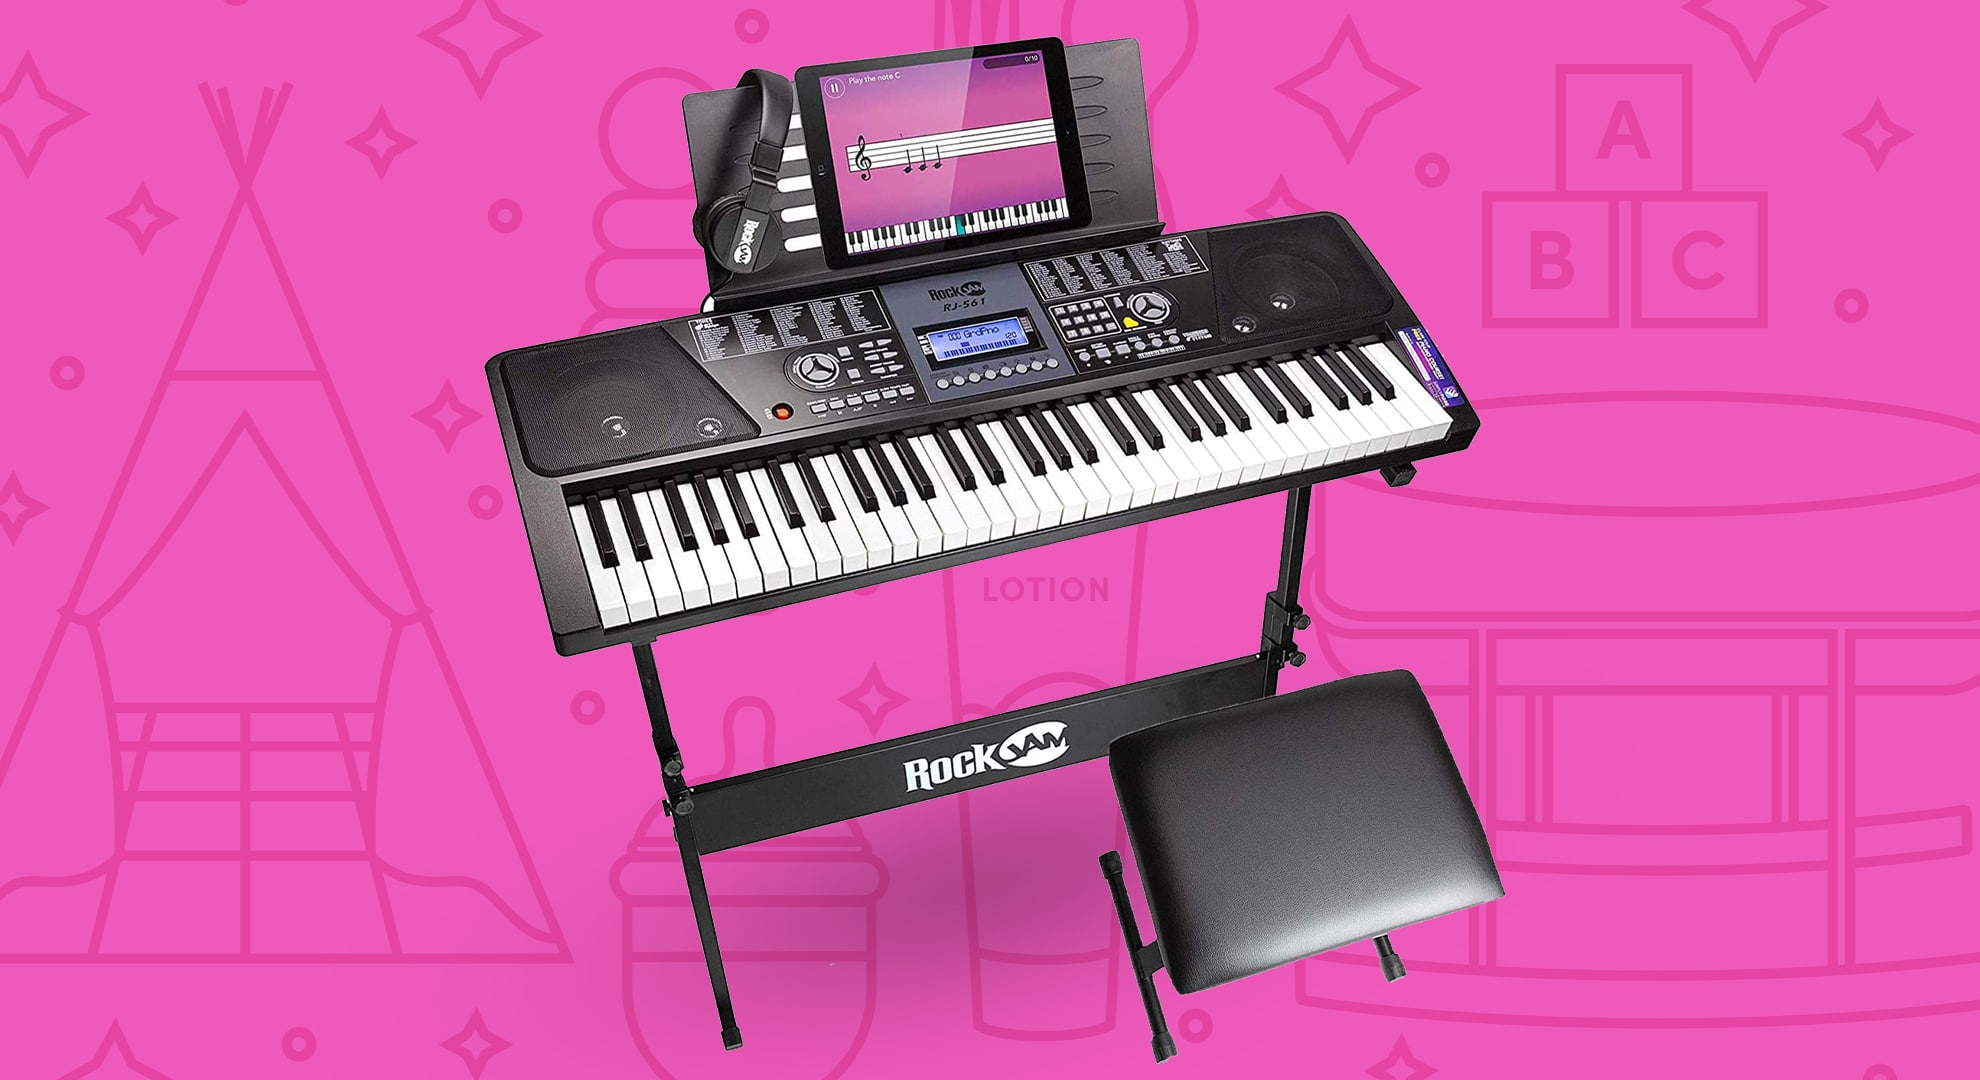 Best keyboard for Toddlers